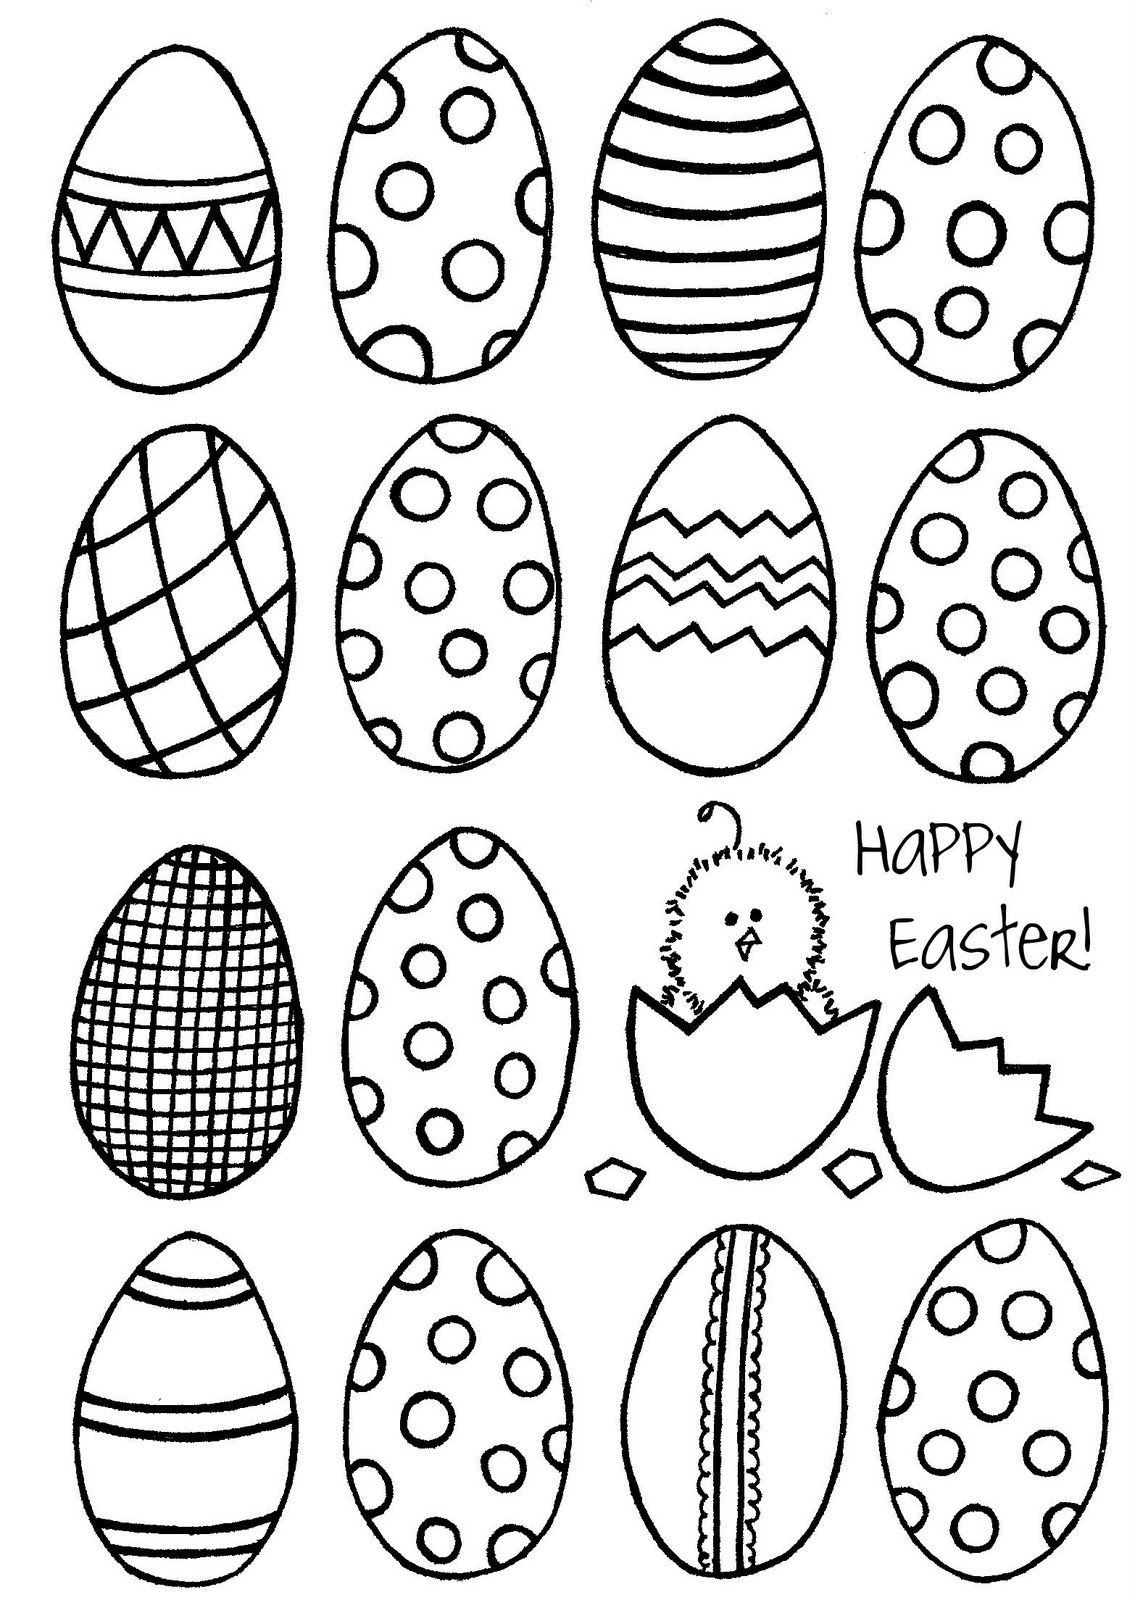 Jane Of All Crafts Hand Drawn Easter Printable For You Because I M Cool Like That